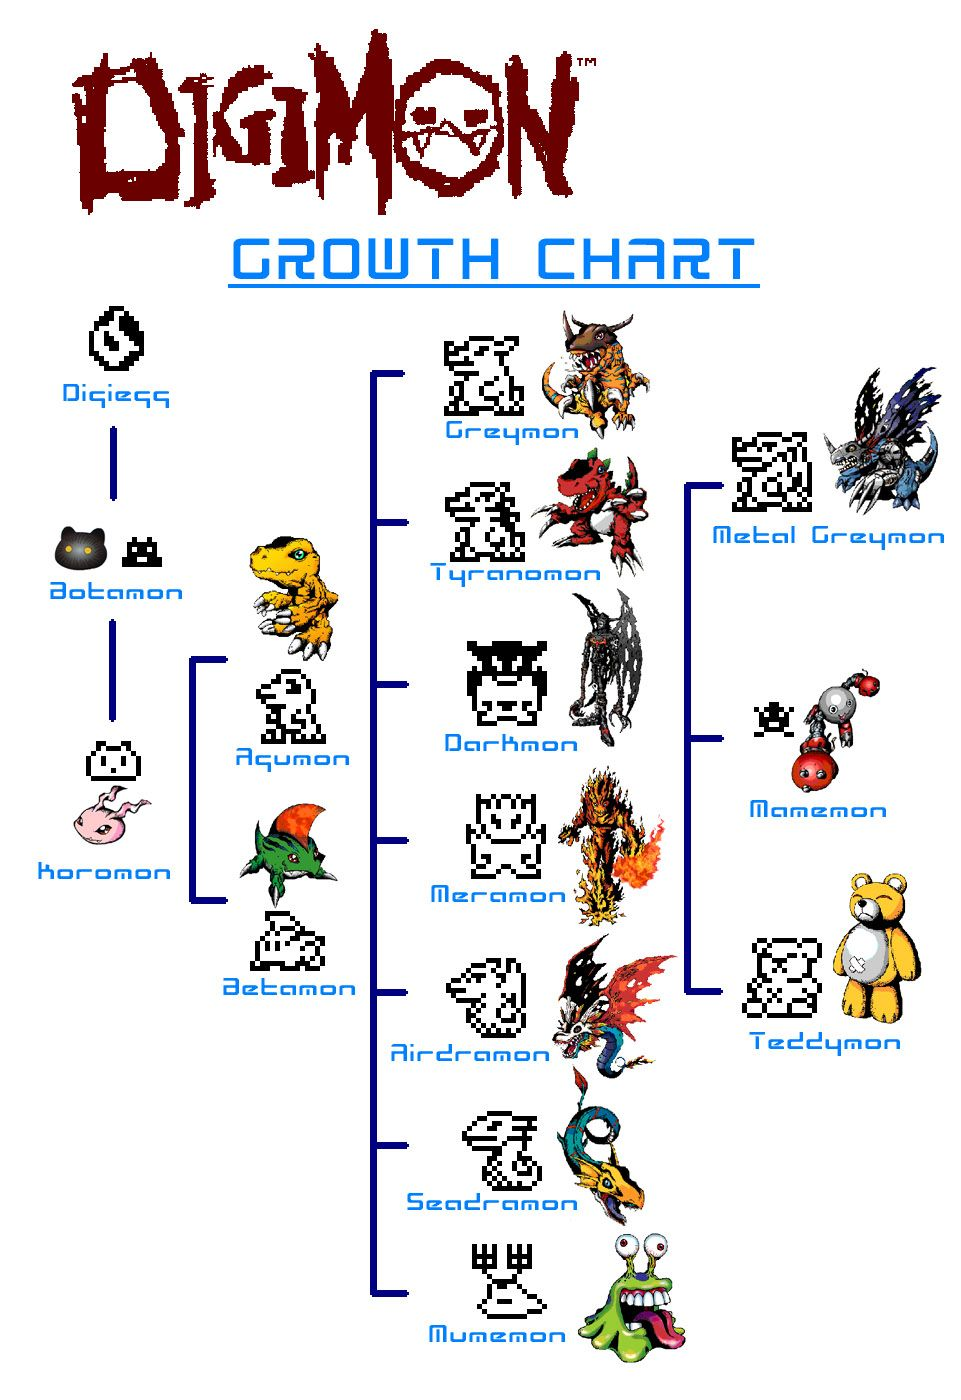 Digimon tamagotchi growth chart digimon pinterest digimon tamagotchi growth chart geenschuldenfo Choice Image